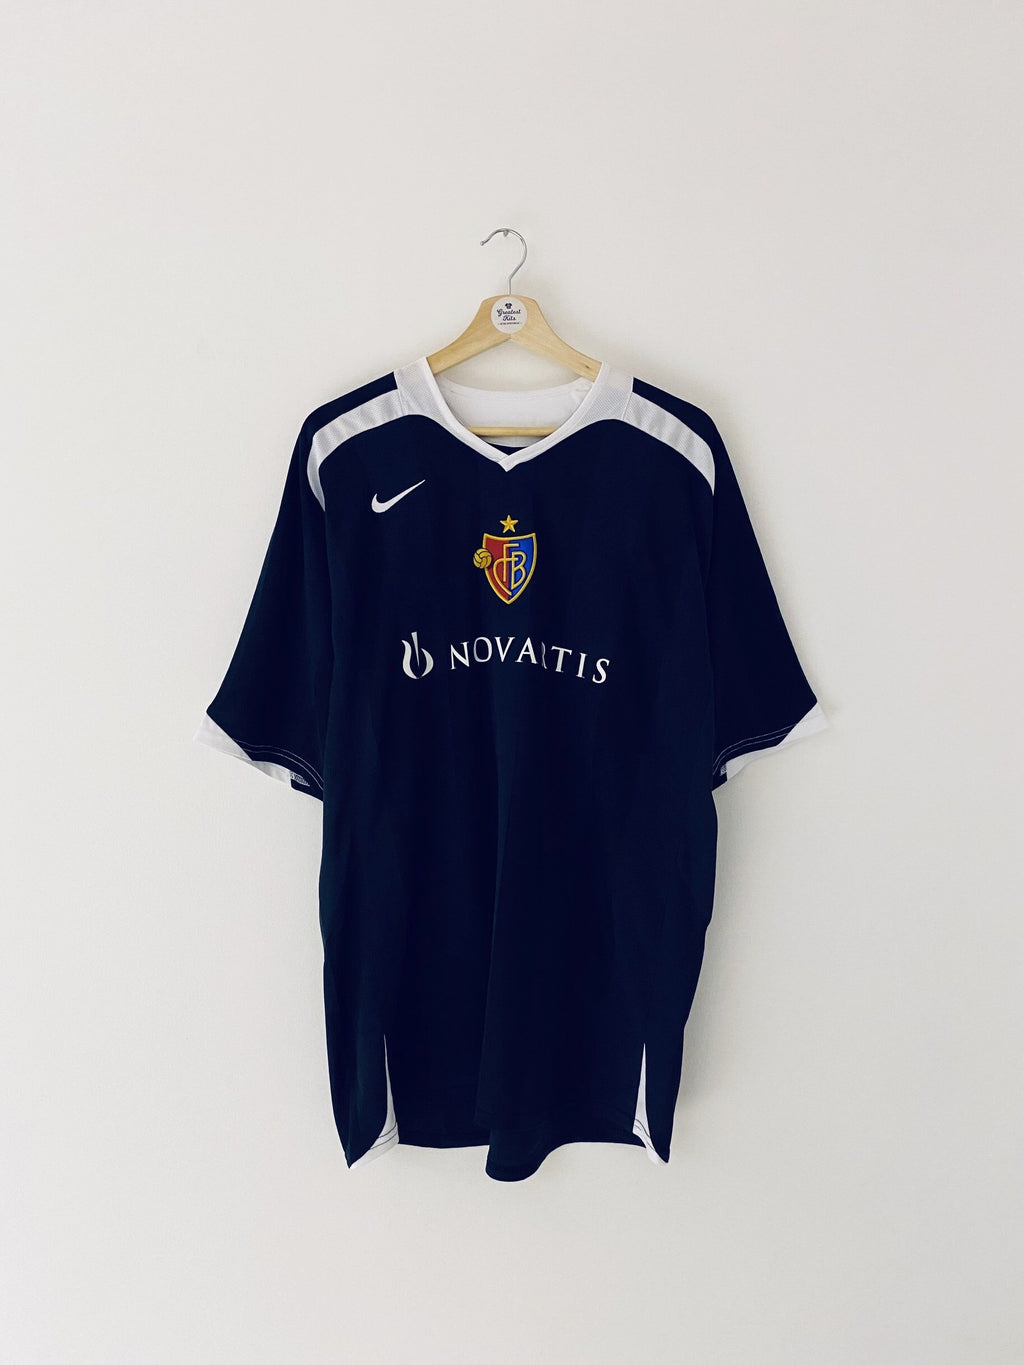 2005/06 Basel Third Shirt (XL) 7.5/10